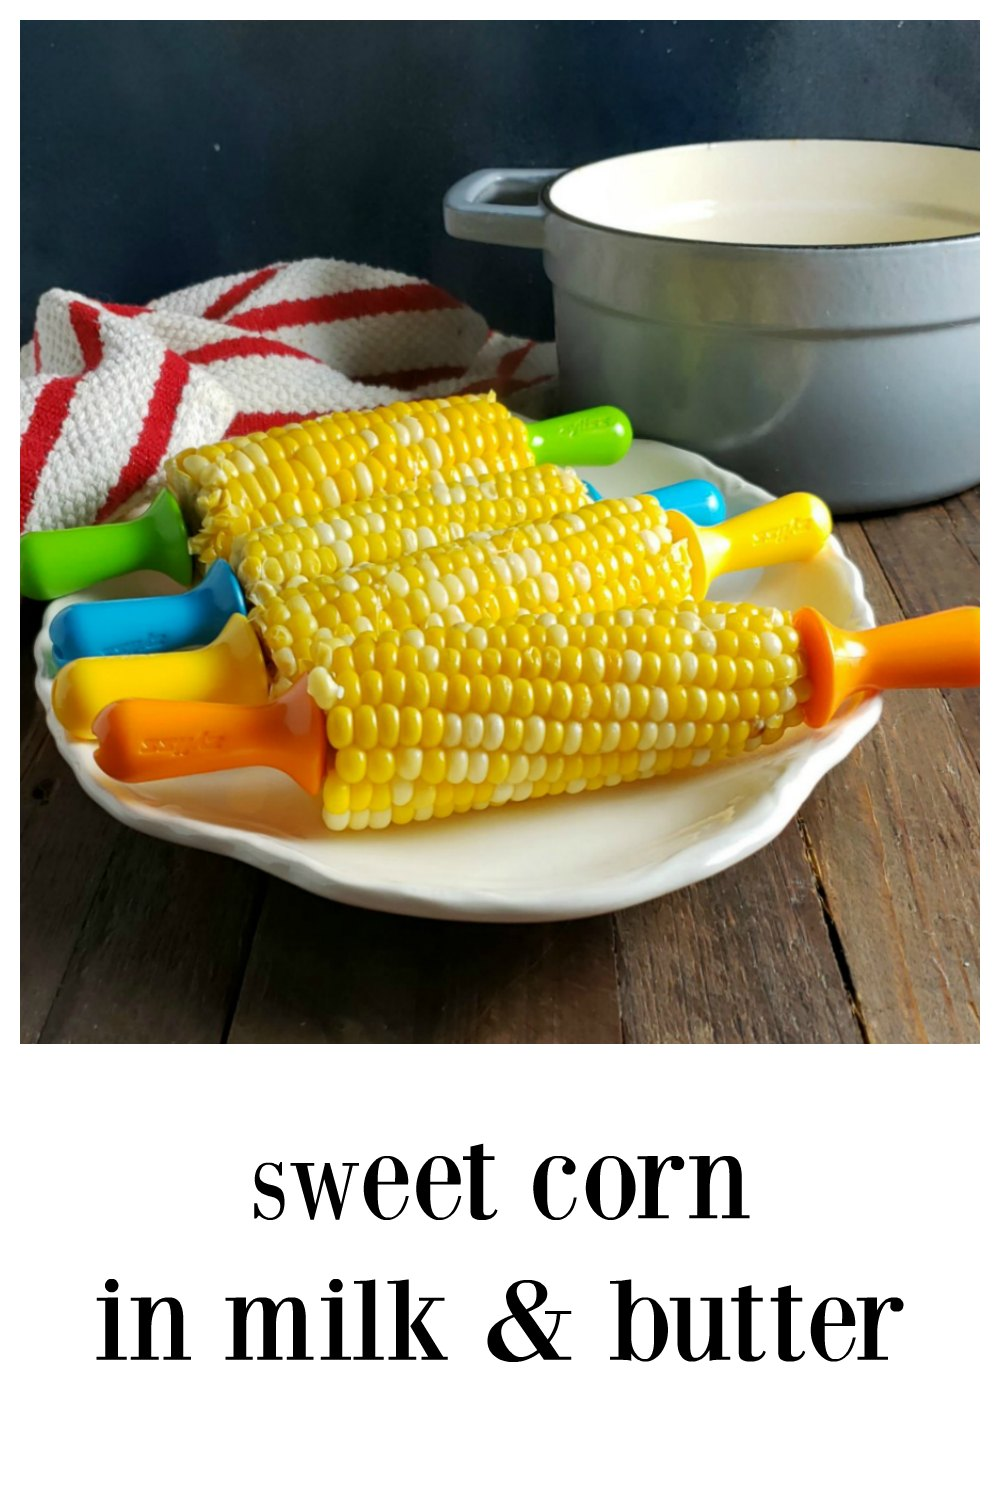 Sweet Corn in Milk & Butter, transformative! Take any ear of corn, even if it's not at its peak, and turn it into something super delish! Fast & Easy. #CornRecipe #SweetCorn #SweetCornMilk #CornMilk